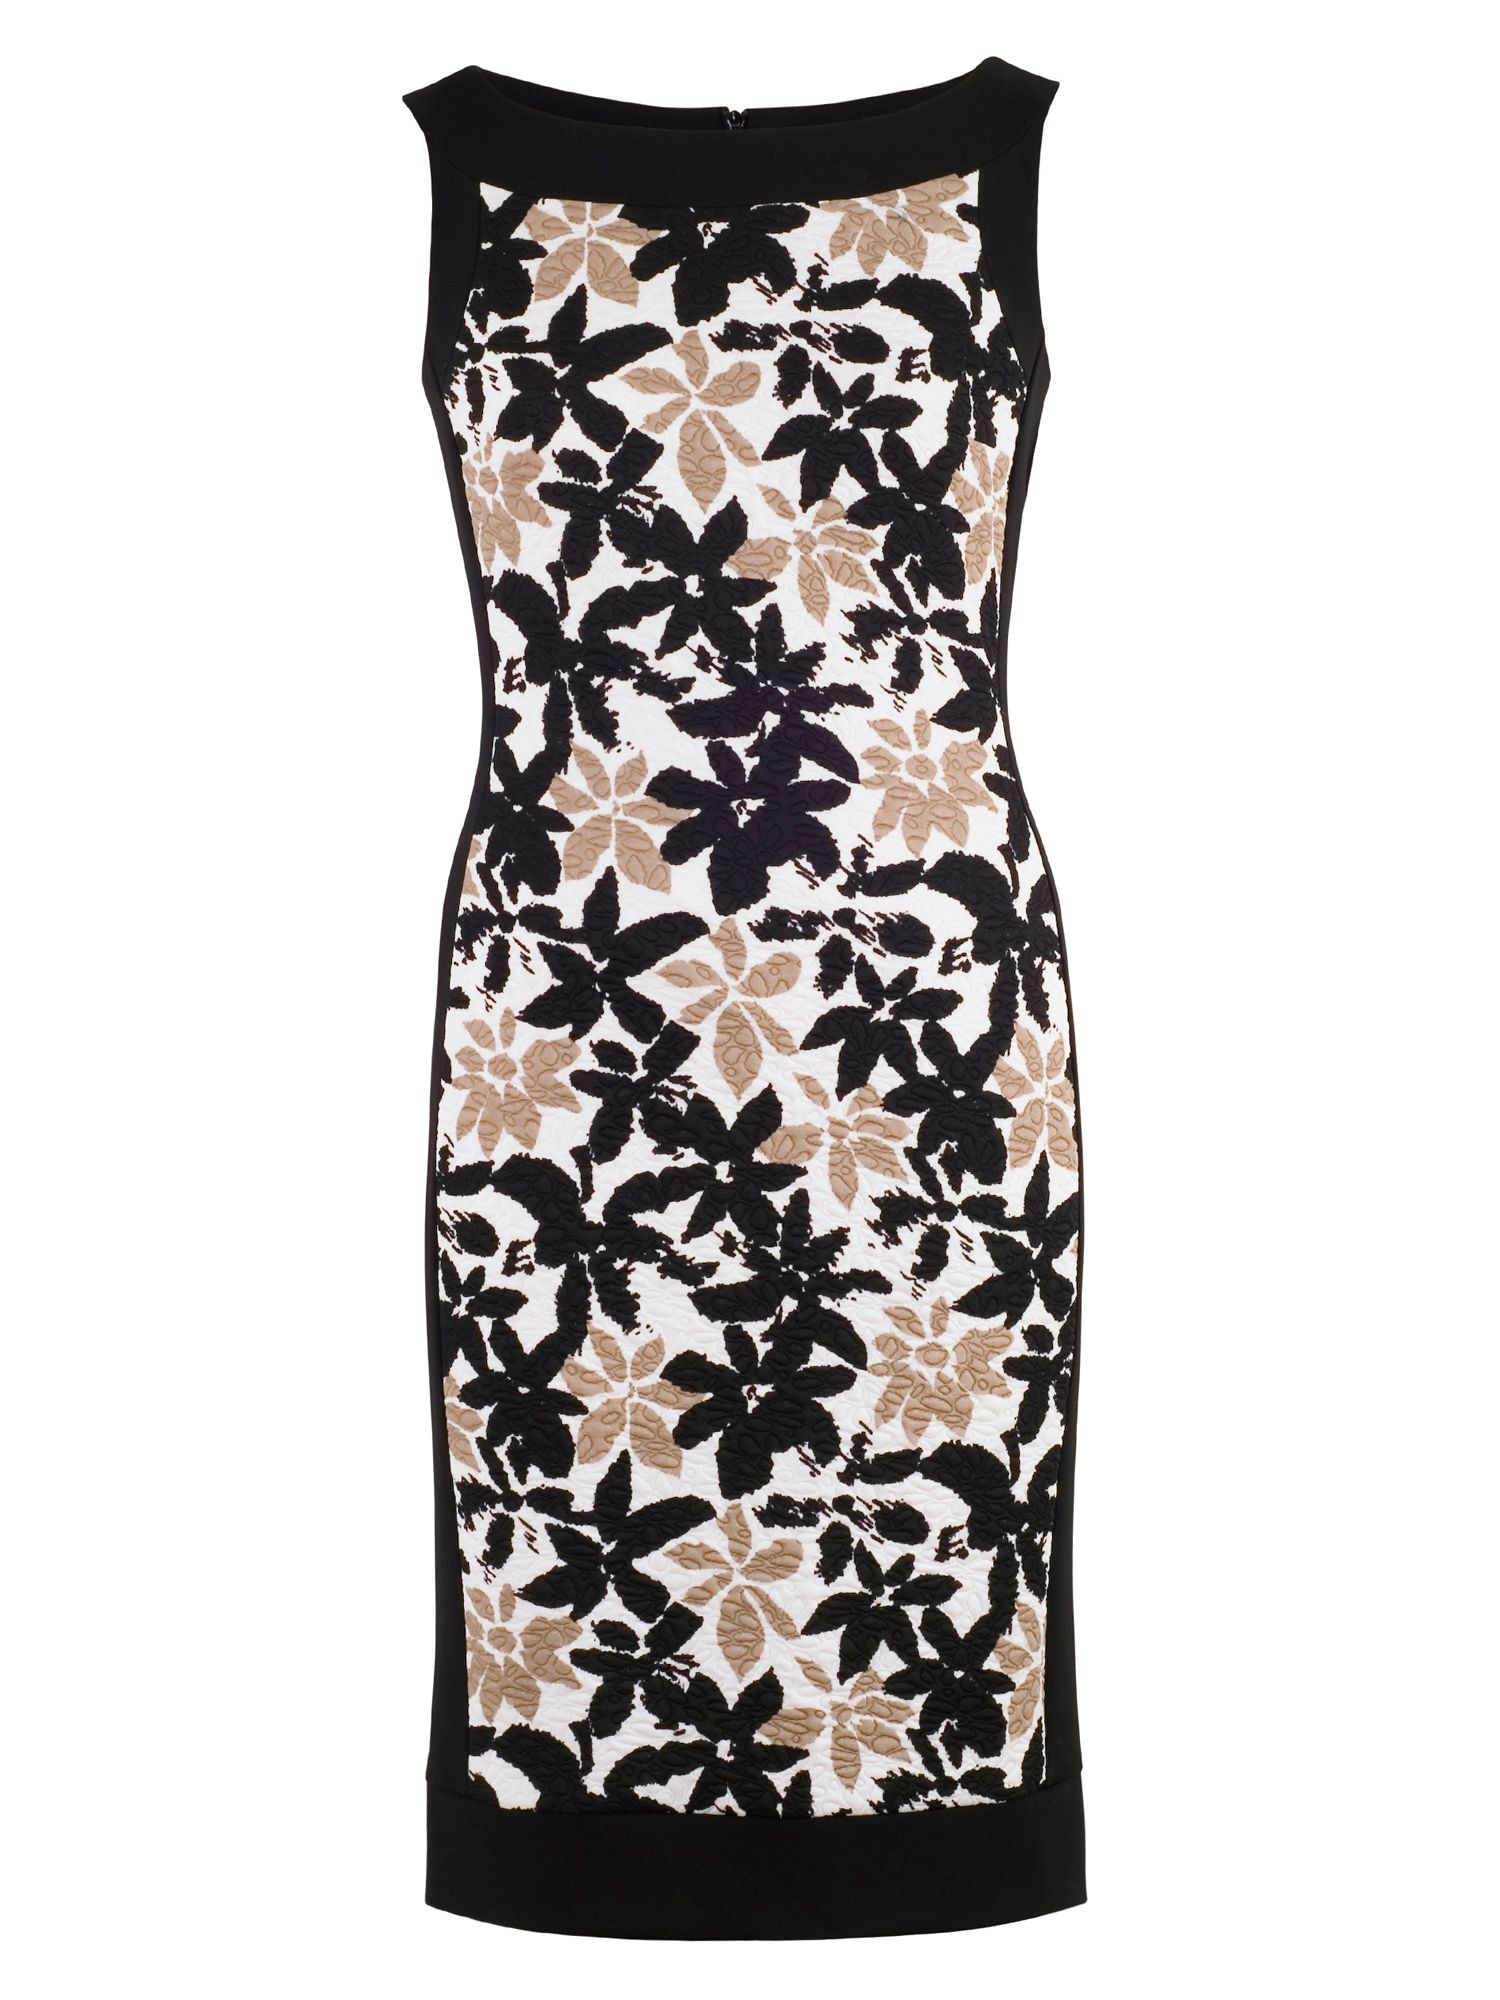 Chesca Floral Print Fancy Jersey Dress, Black